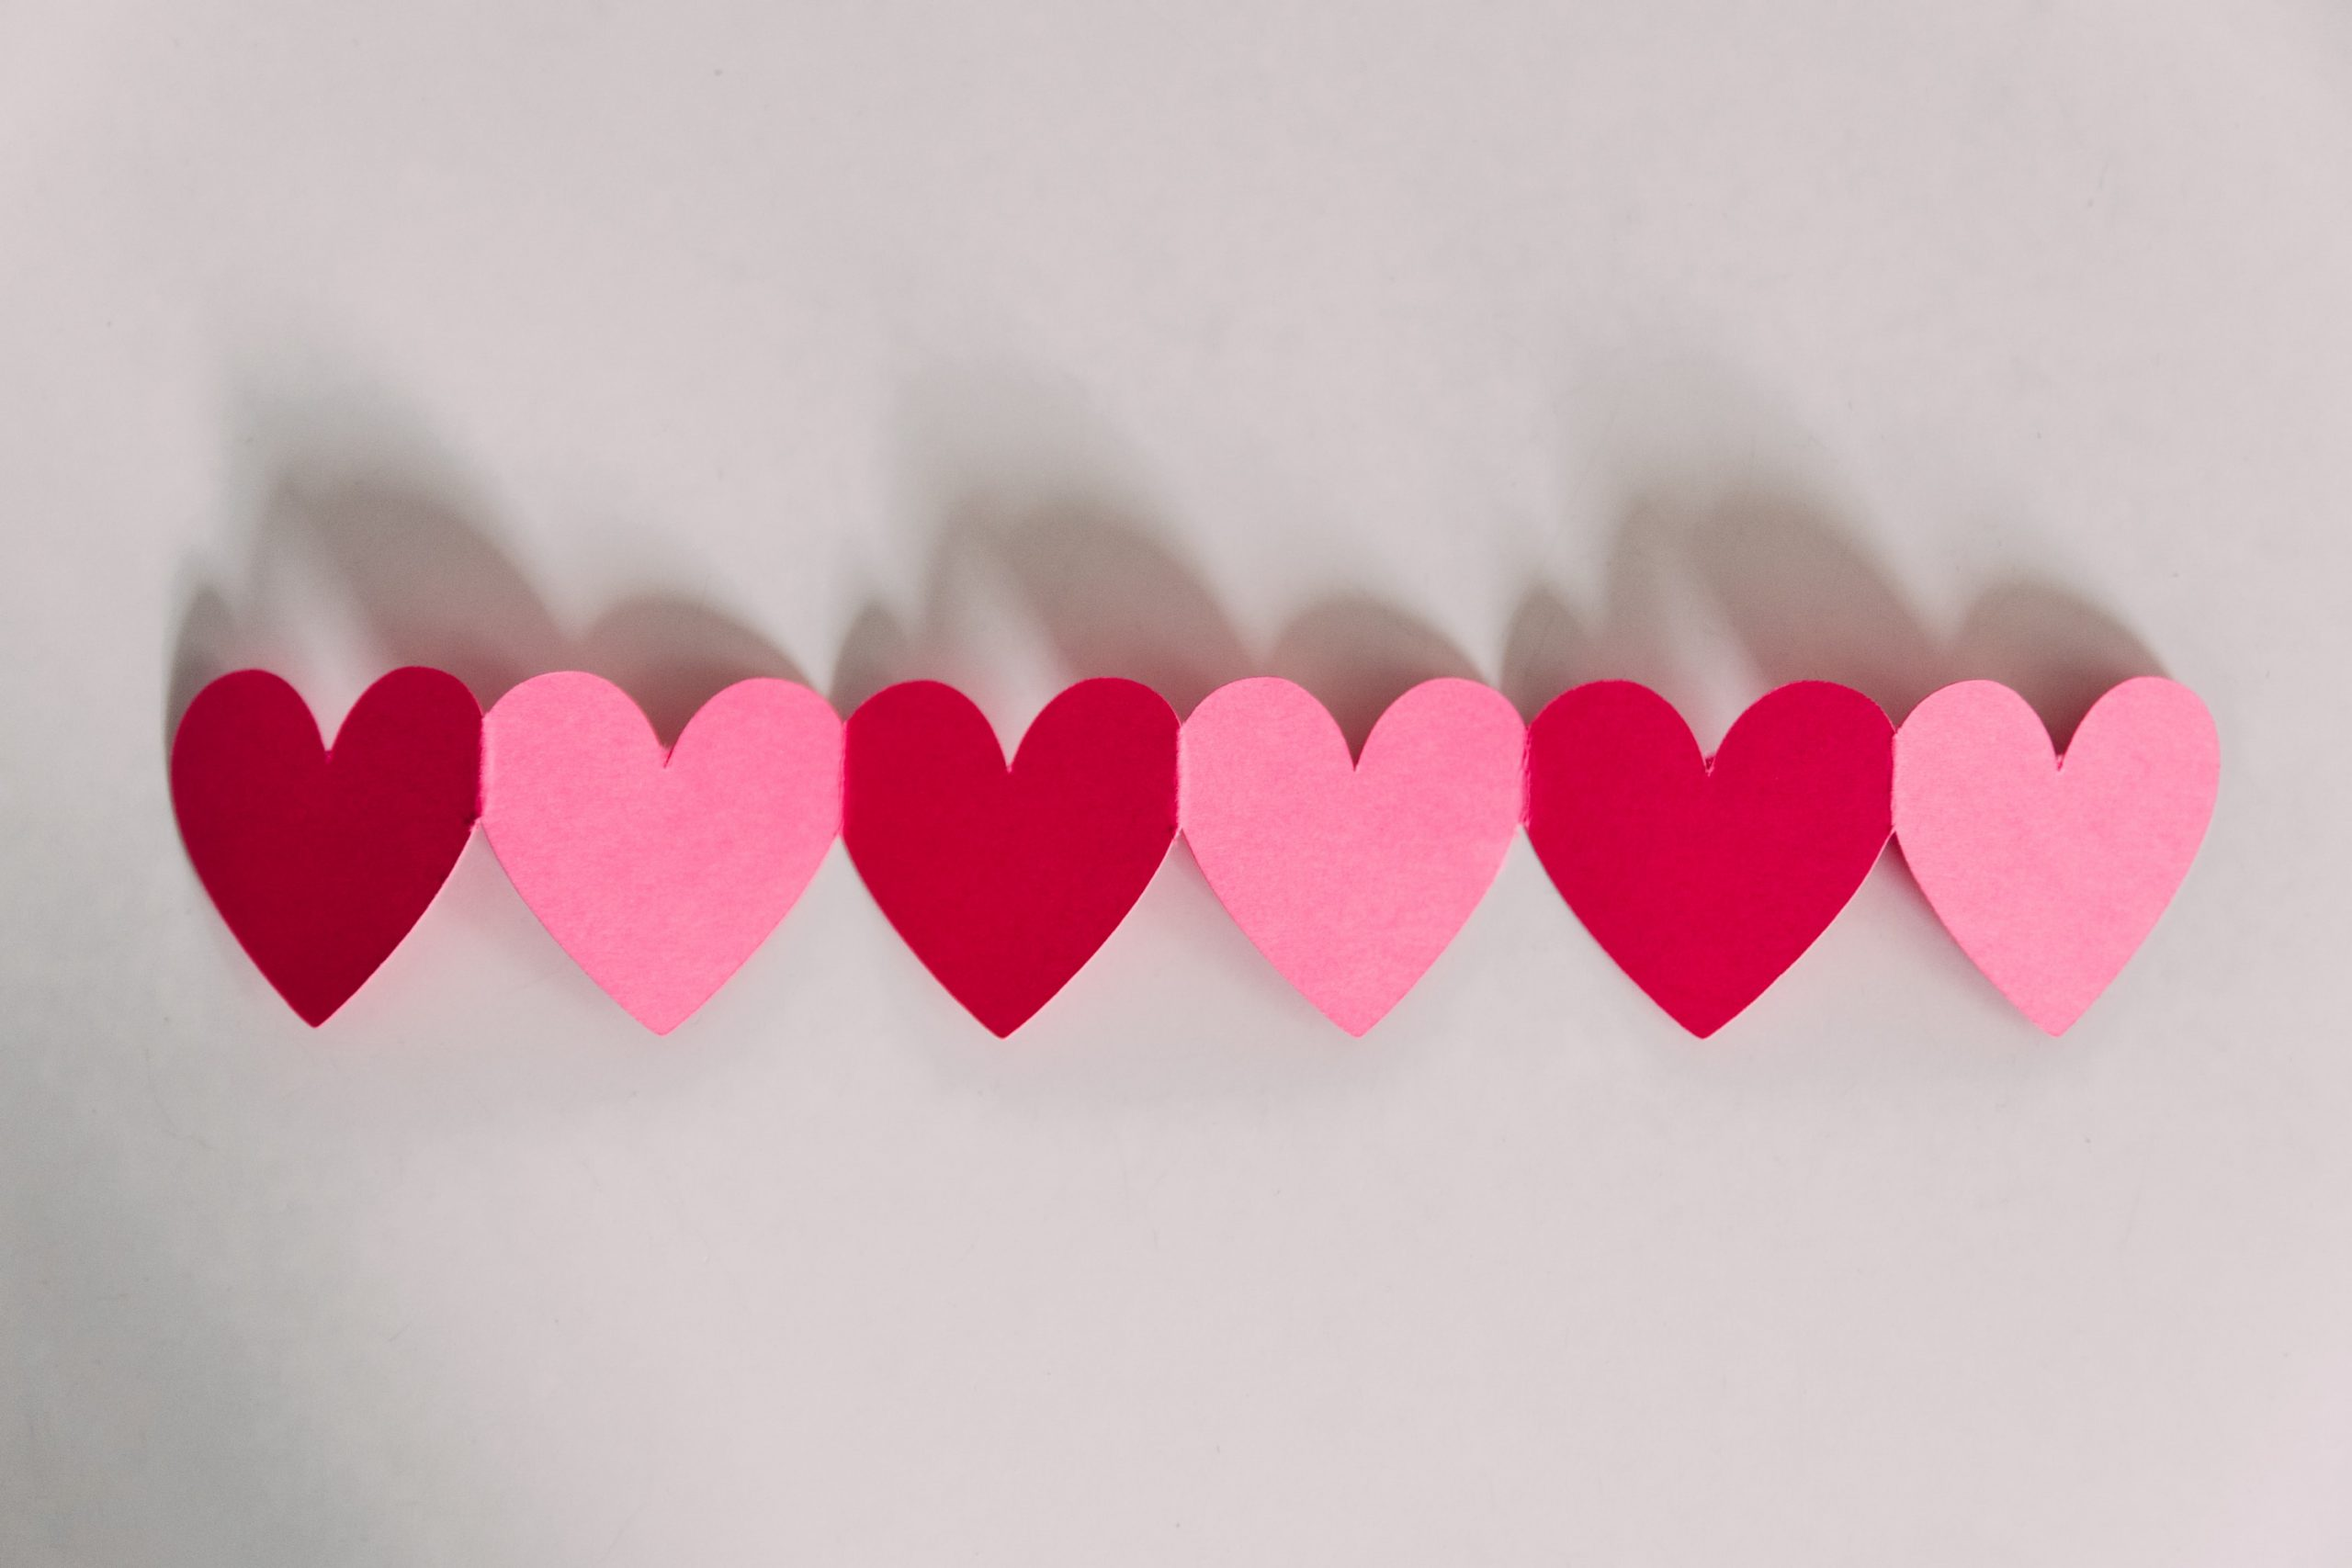 4 Ways to Make Customers Fall in Love With Your Brand